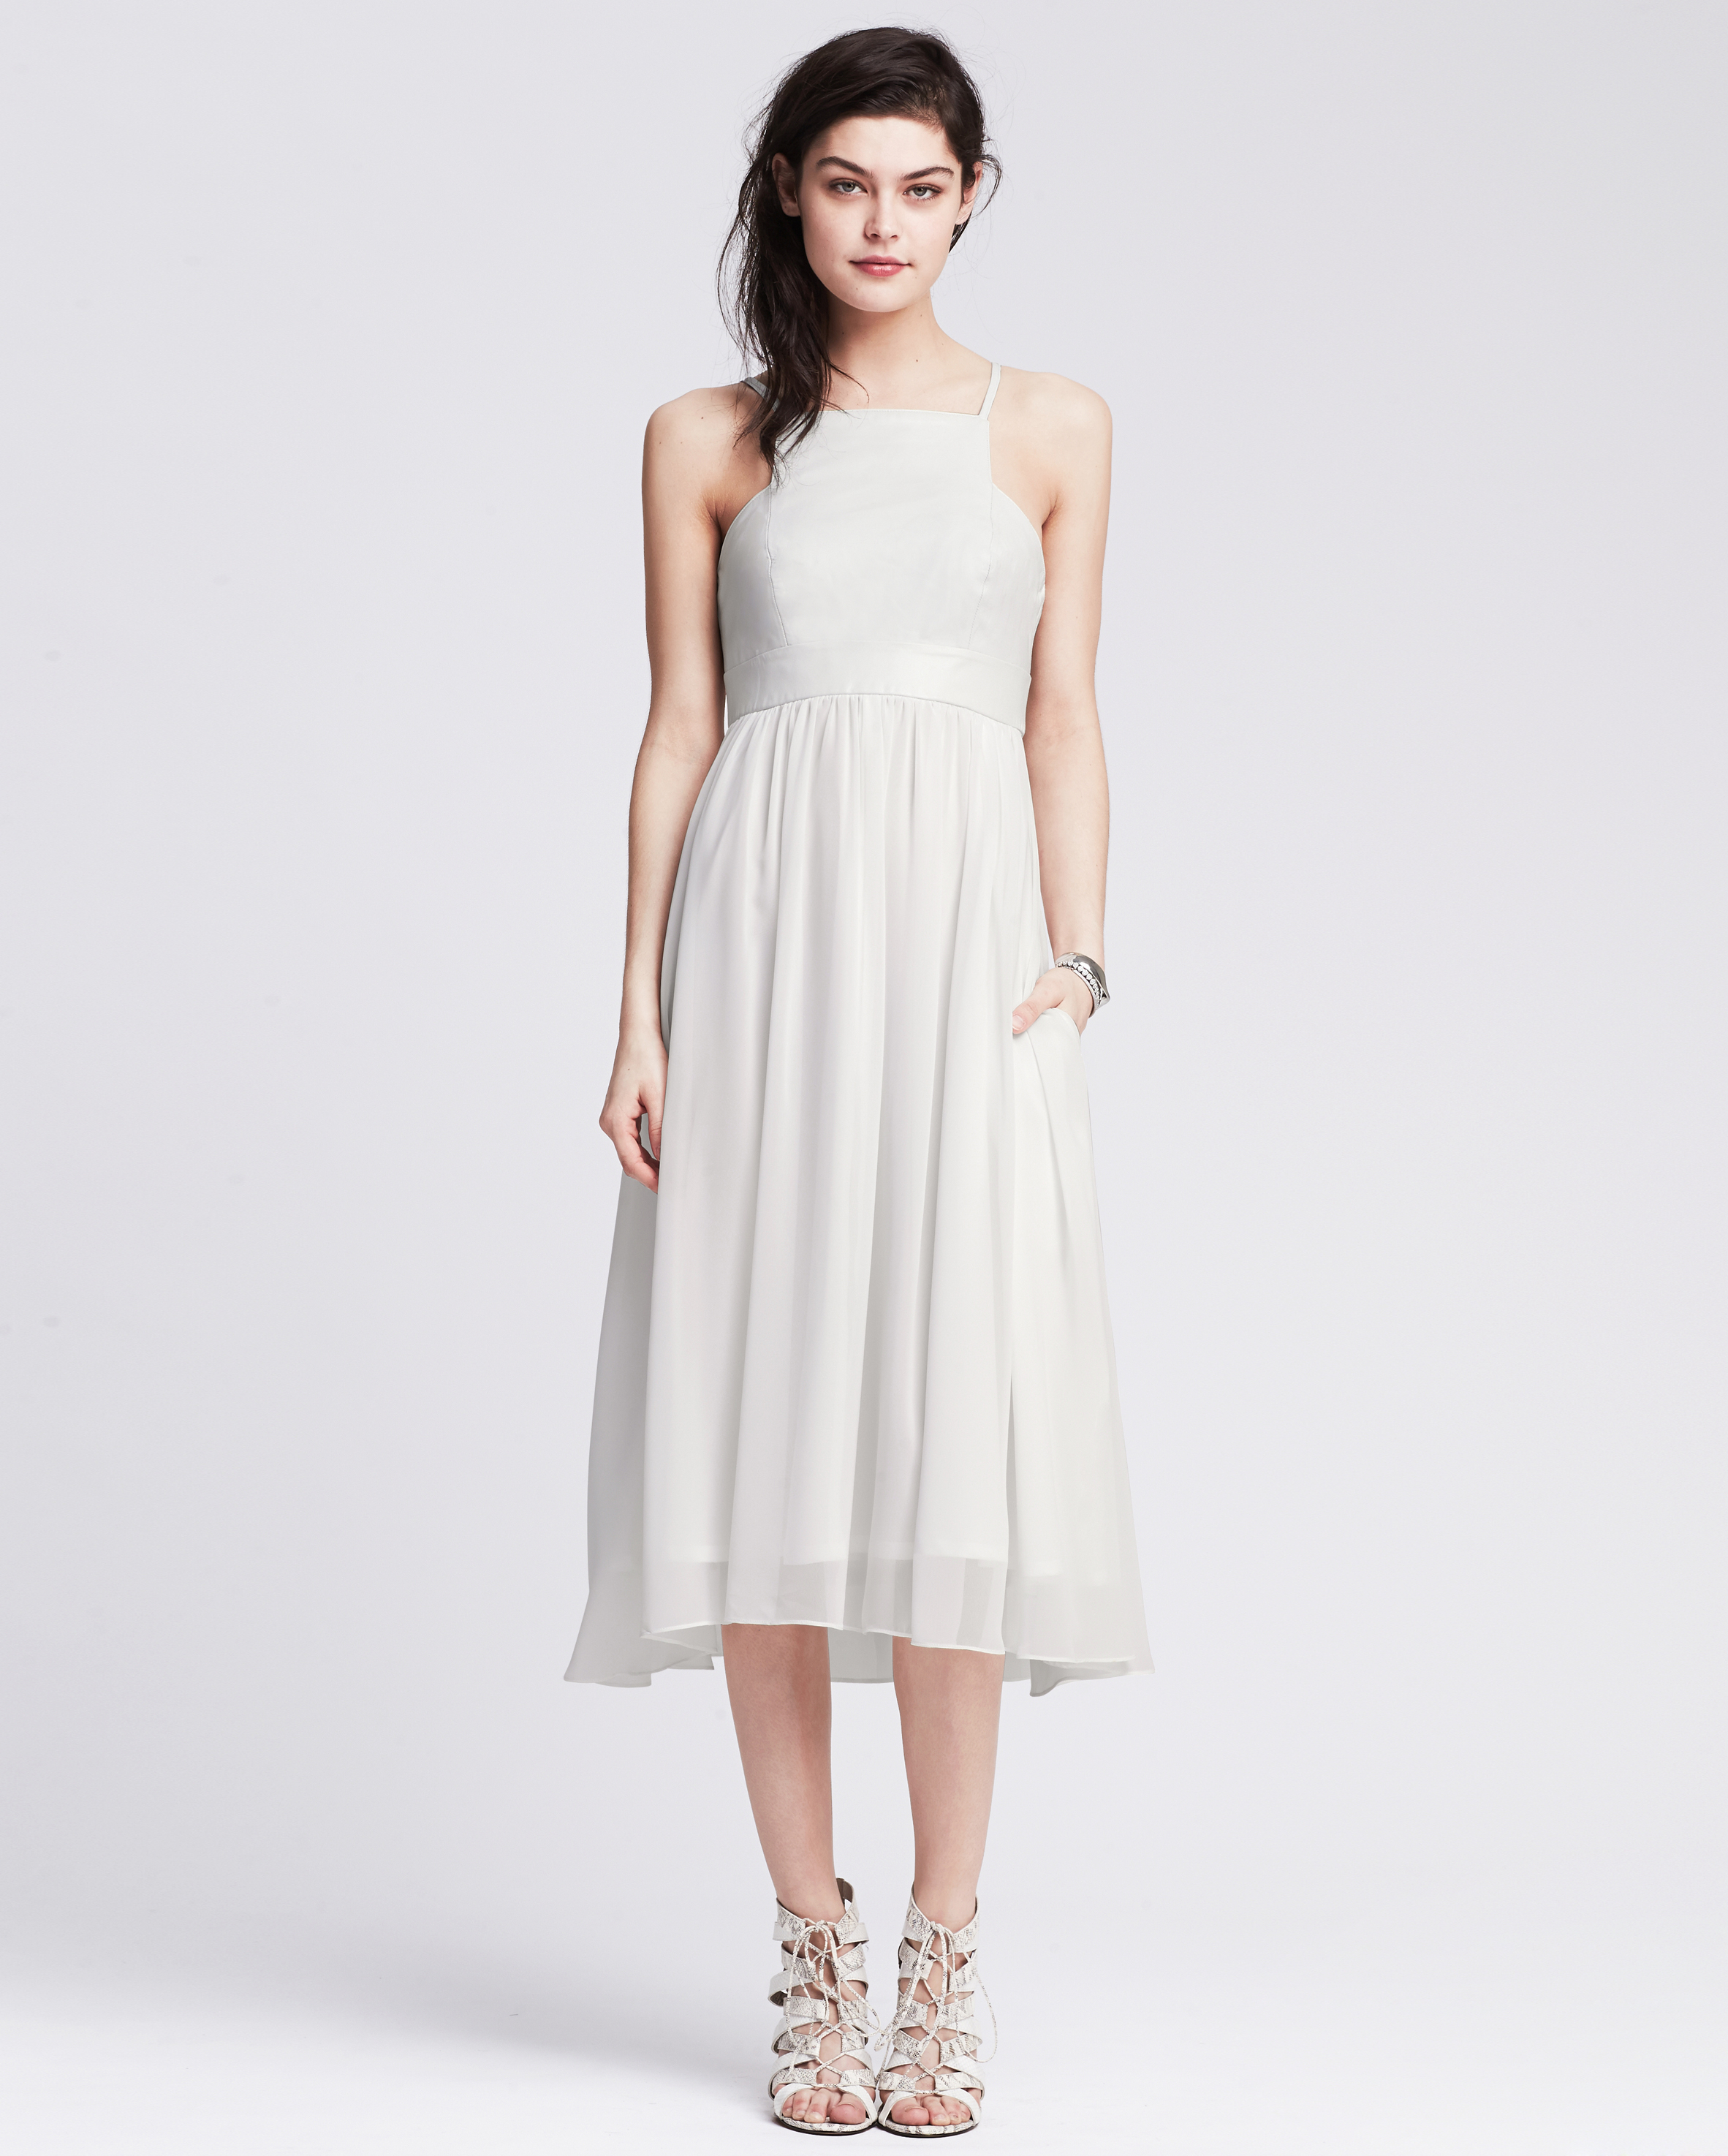 cityhalldresses-bananarepublic-0615.jpg